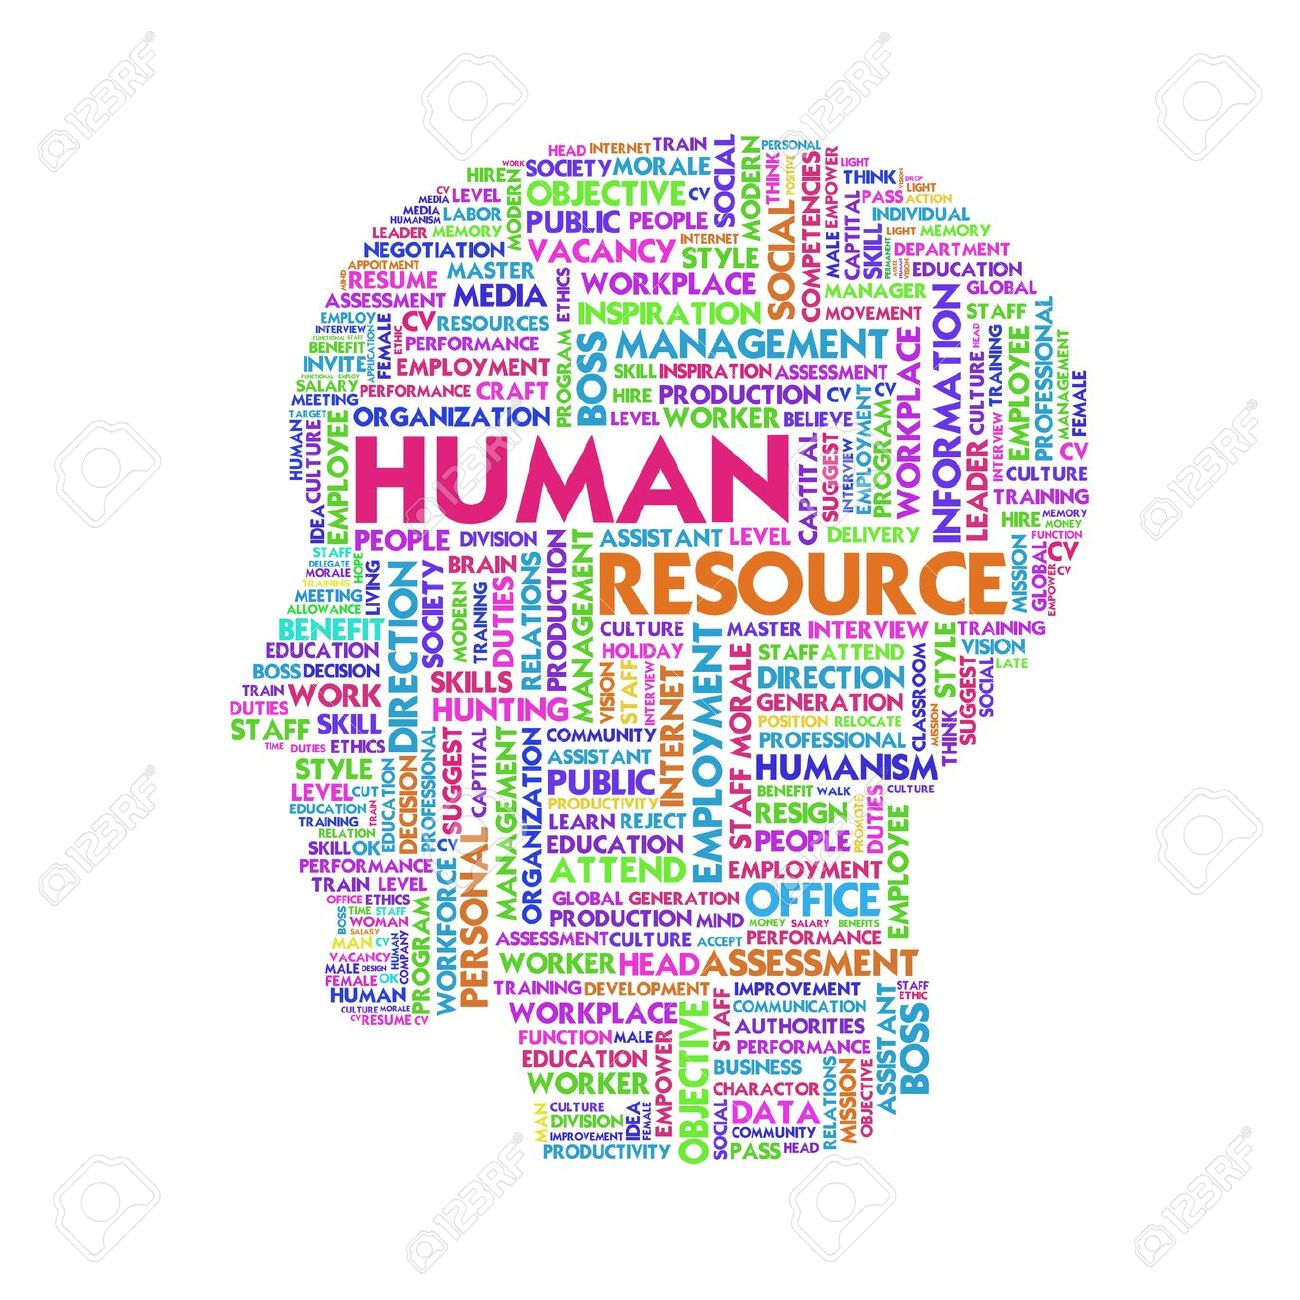 Human resources clipart - Clipground